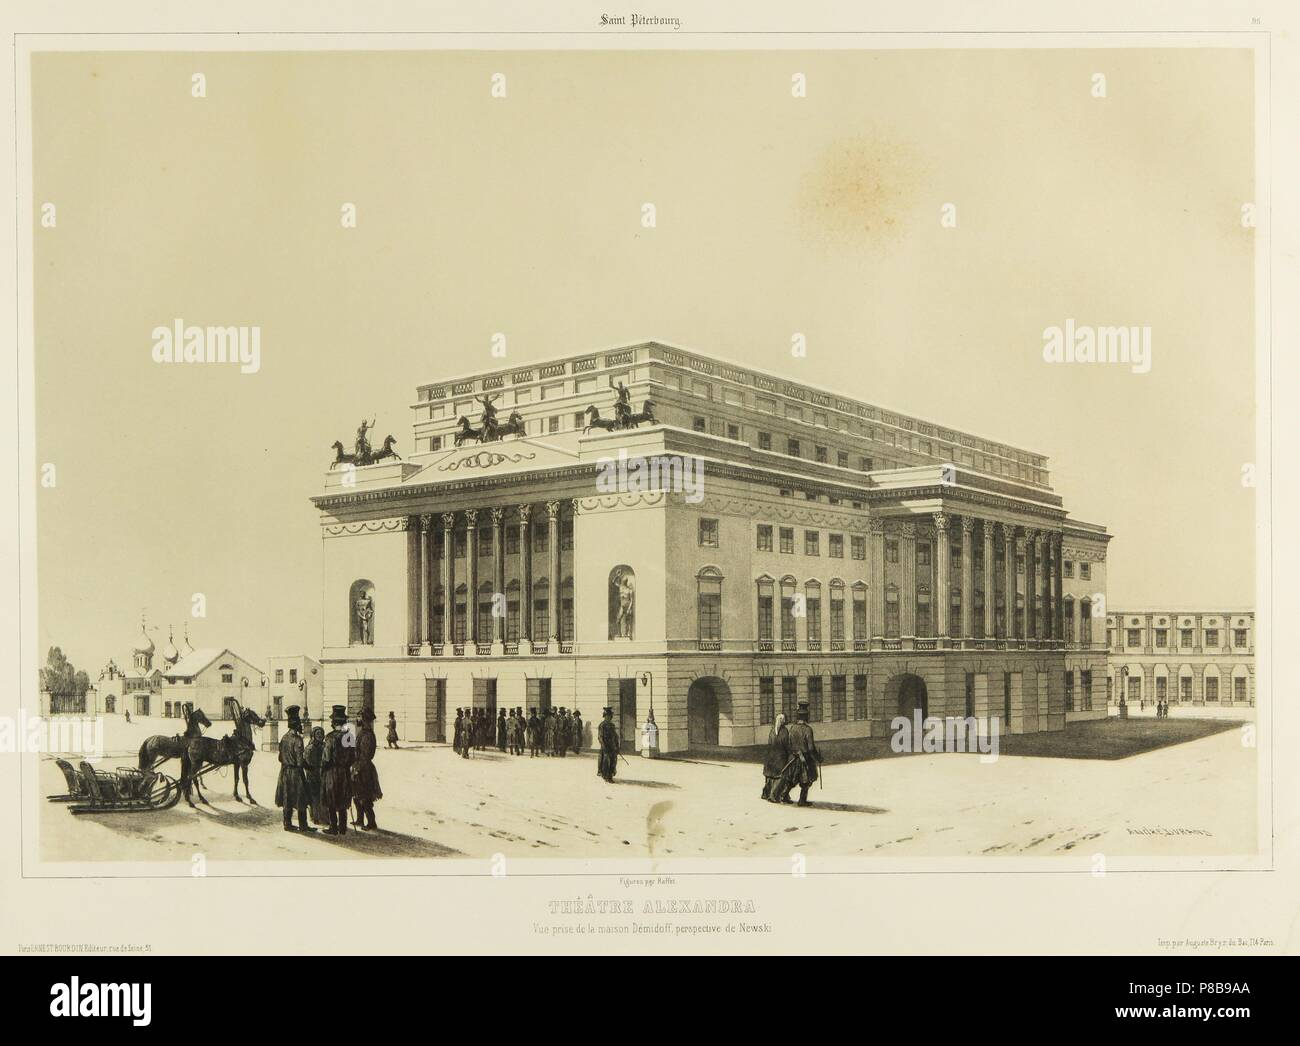 The Alexandrinsky Theatre in Saint Petersburg. Museum: PRIVATE COLLECTION. - Stock Image